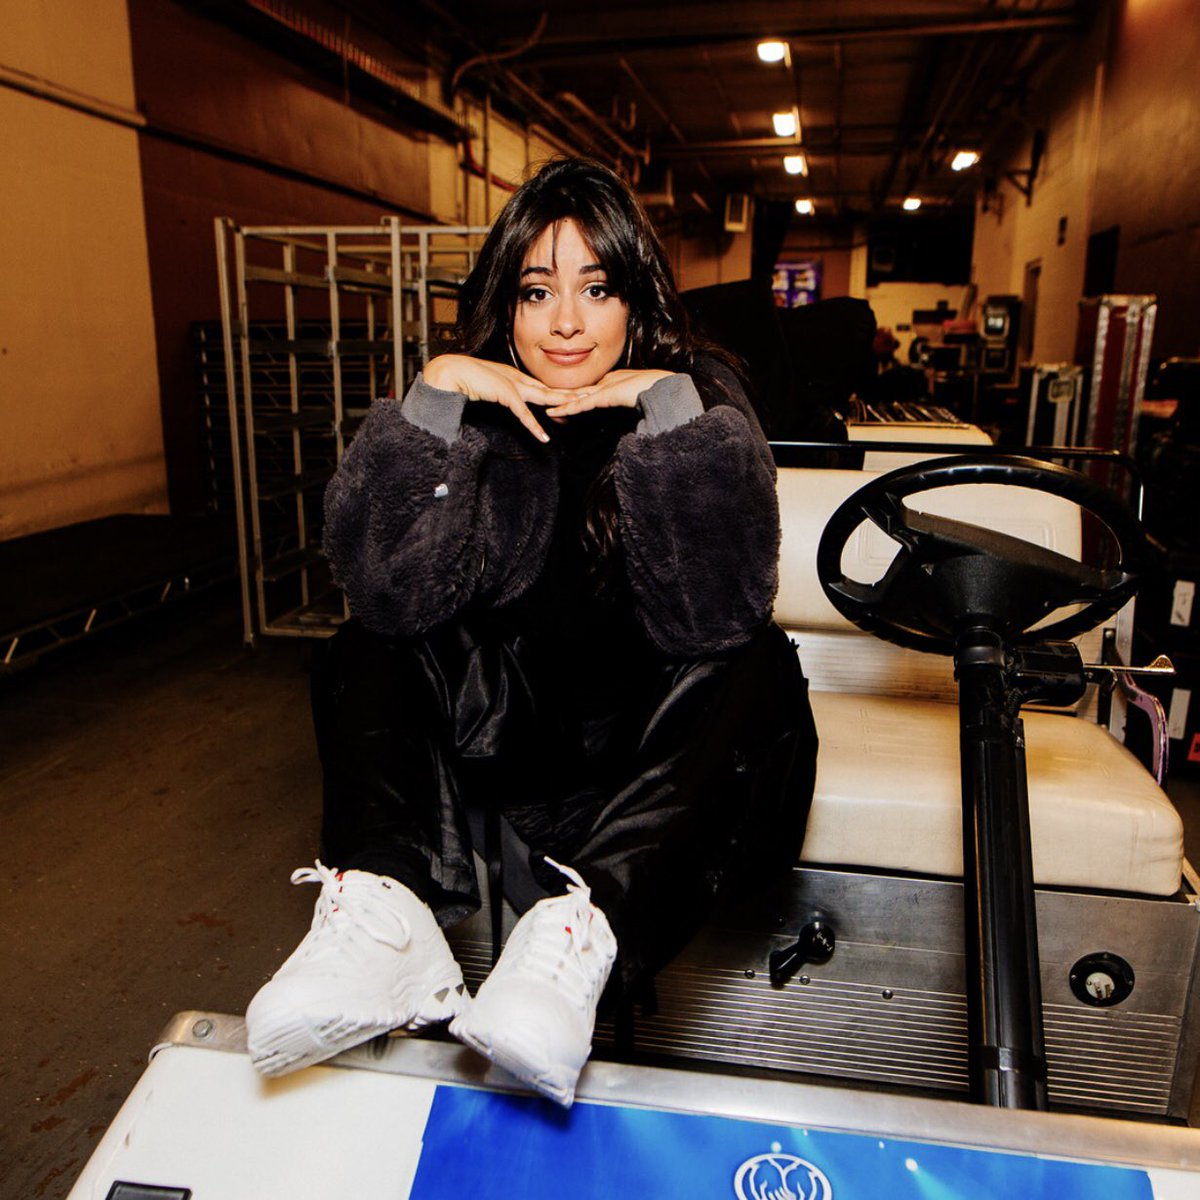 #Energy Latest News Trends Updates Images - Camila_Cabello